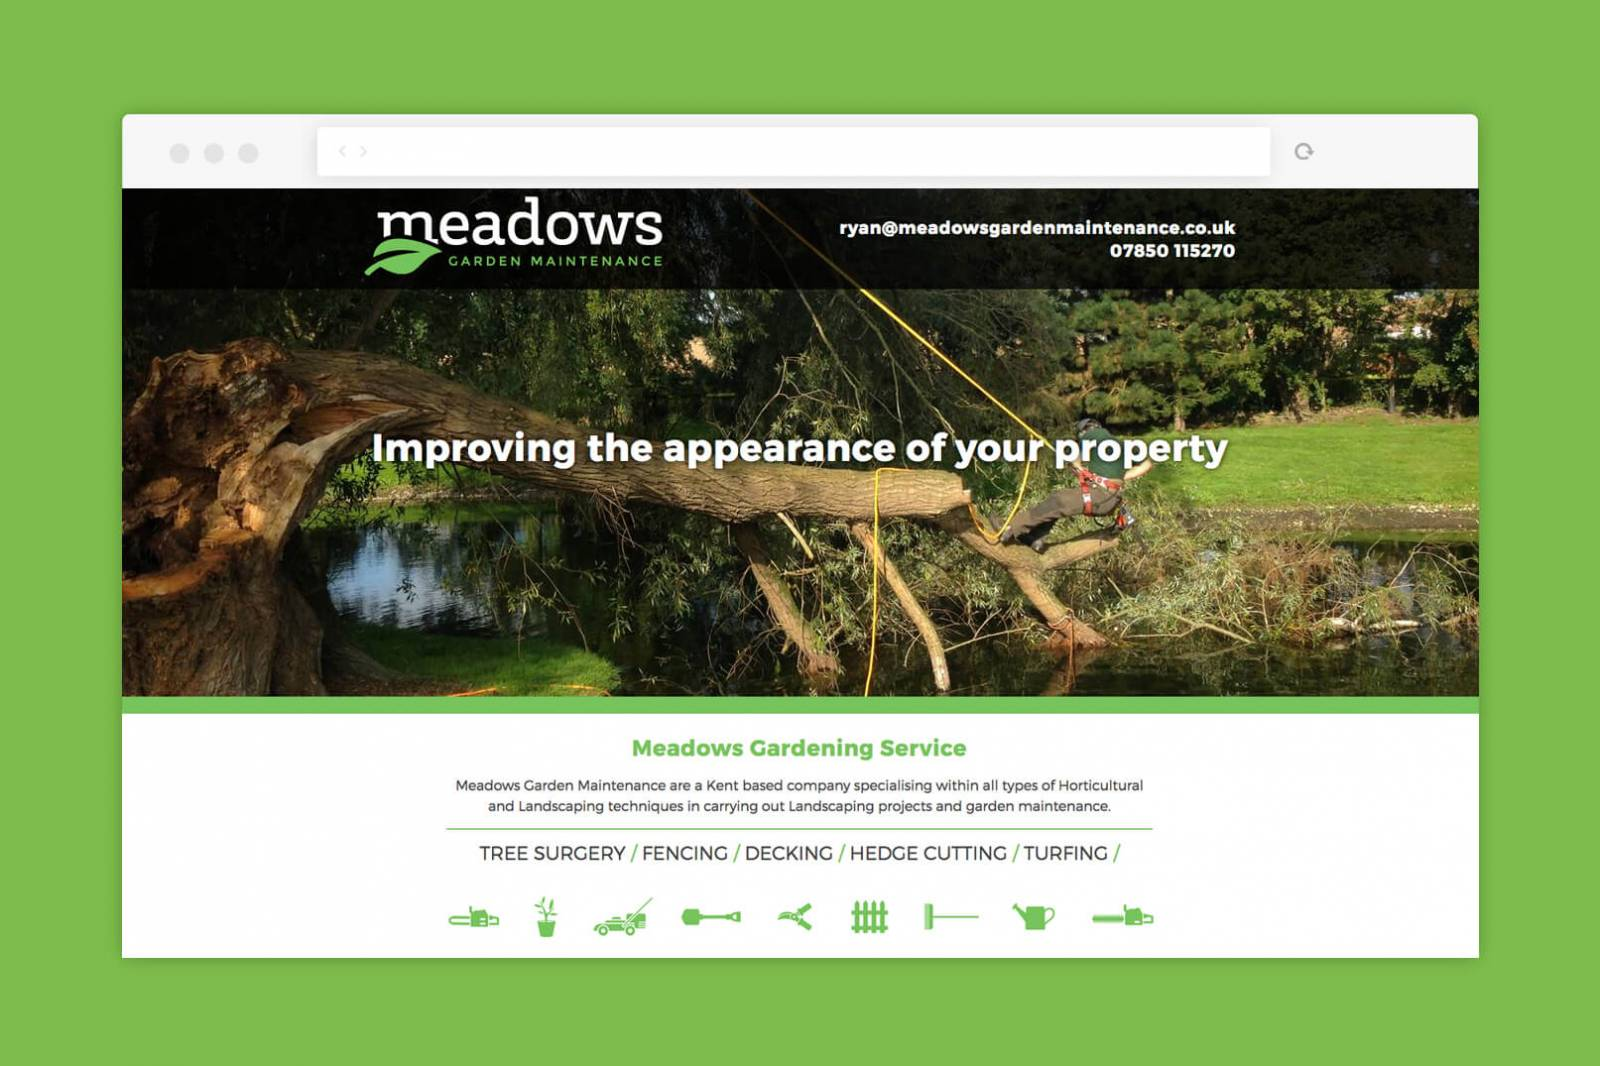 Meadows-website-corporate-identity-agency-graphic-design-canterbury.jpg